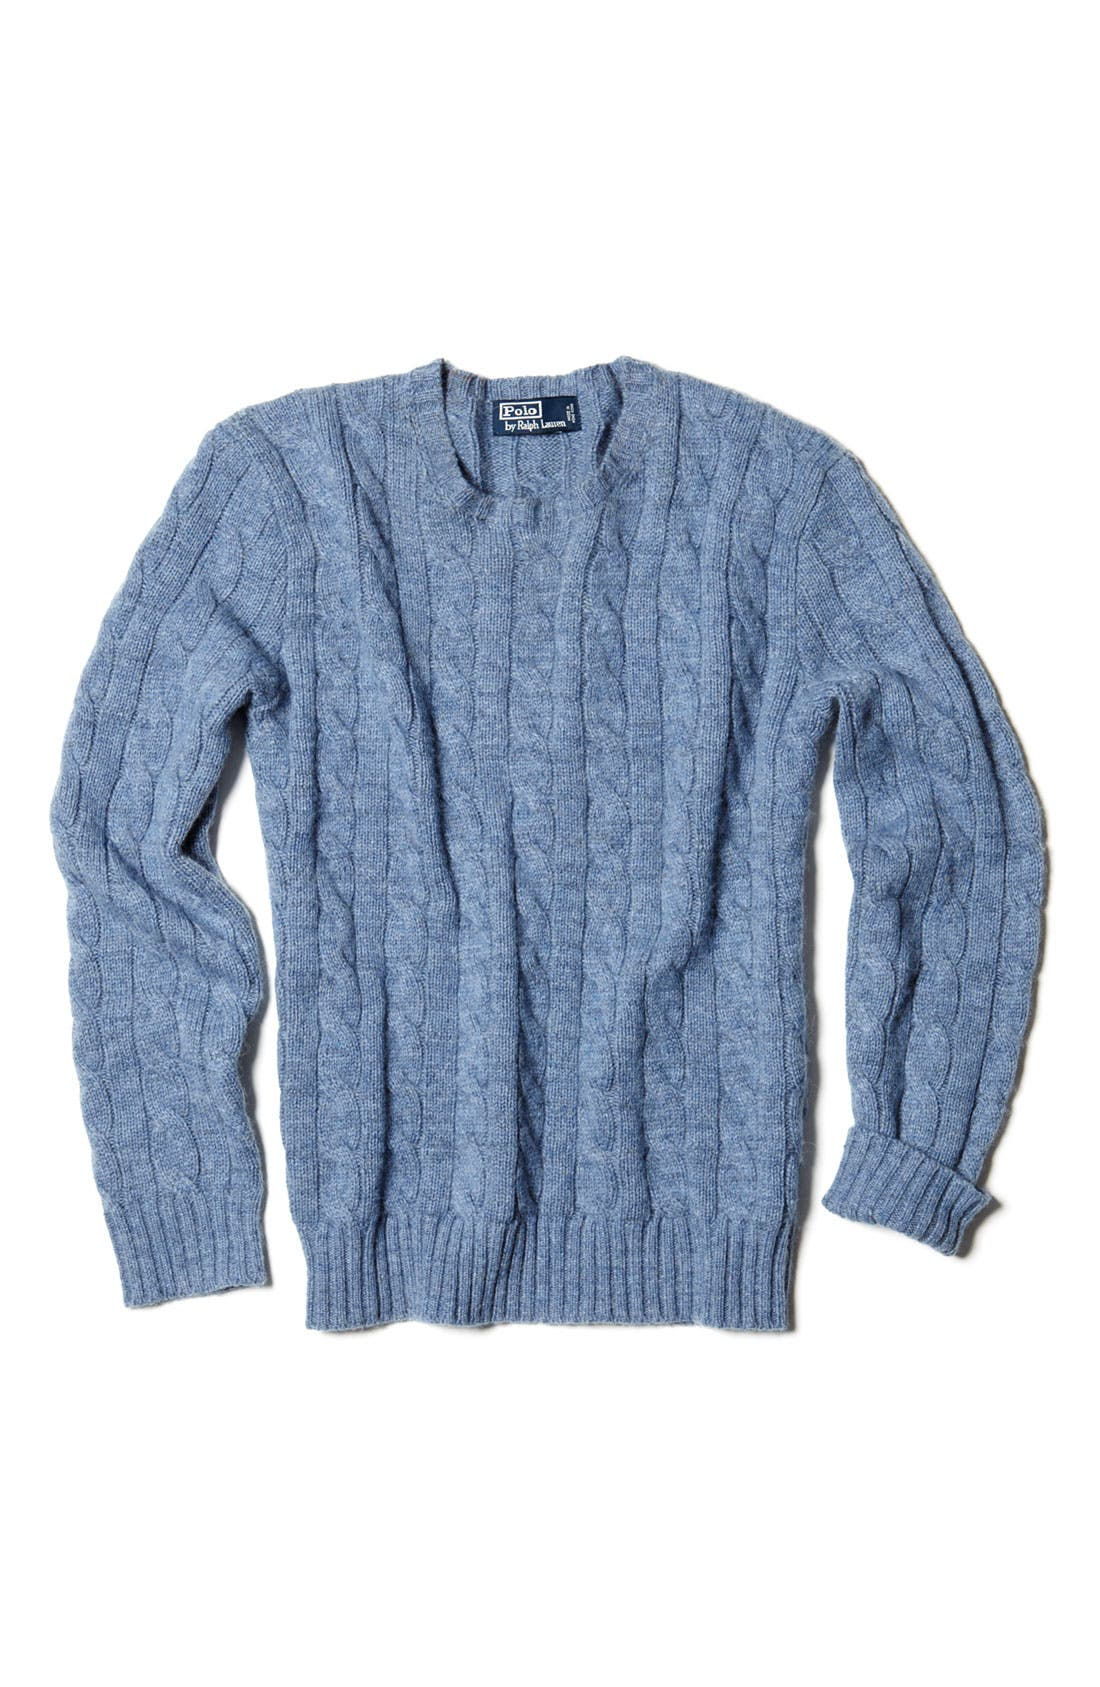 Cable Knit Cashmere Sweater,                             Alternate thumbnail 4, color,                             420